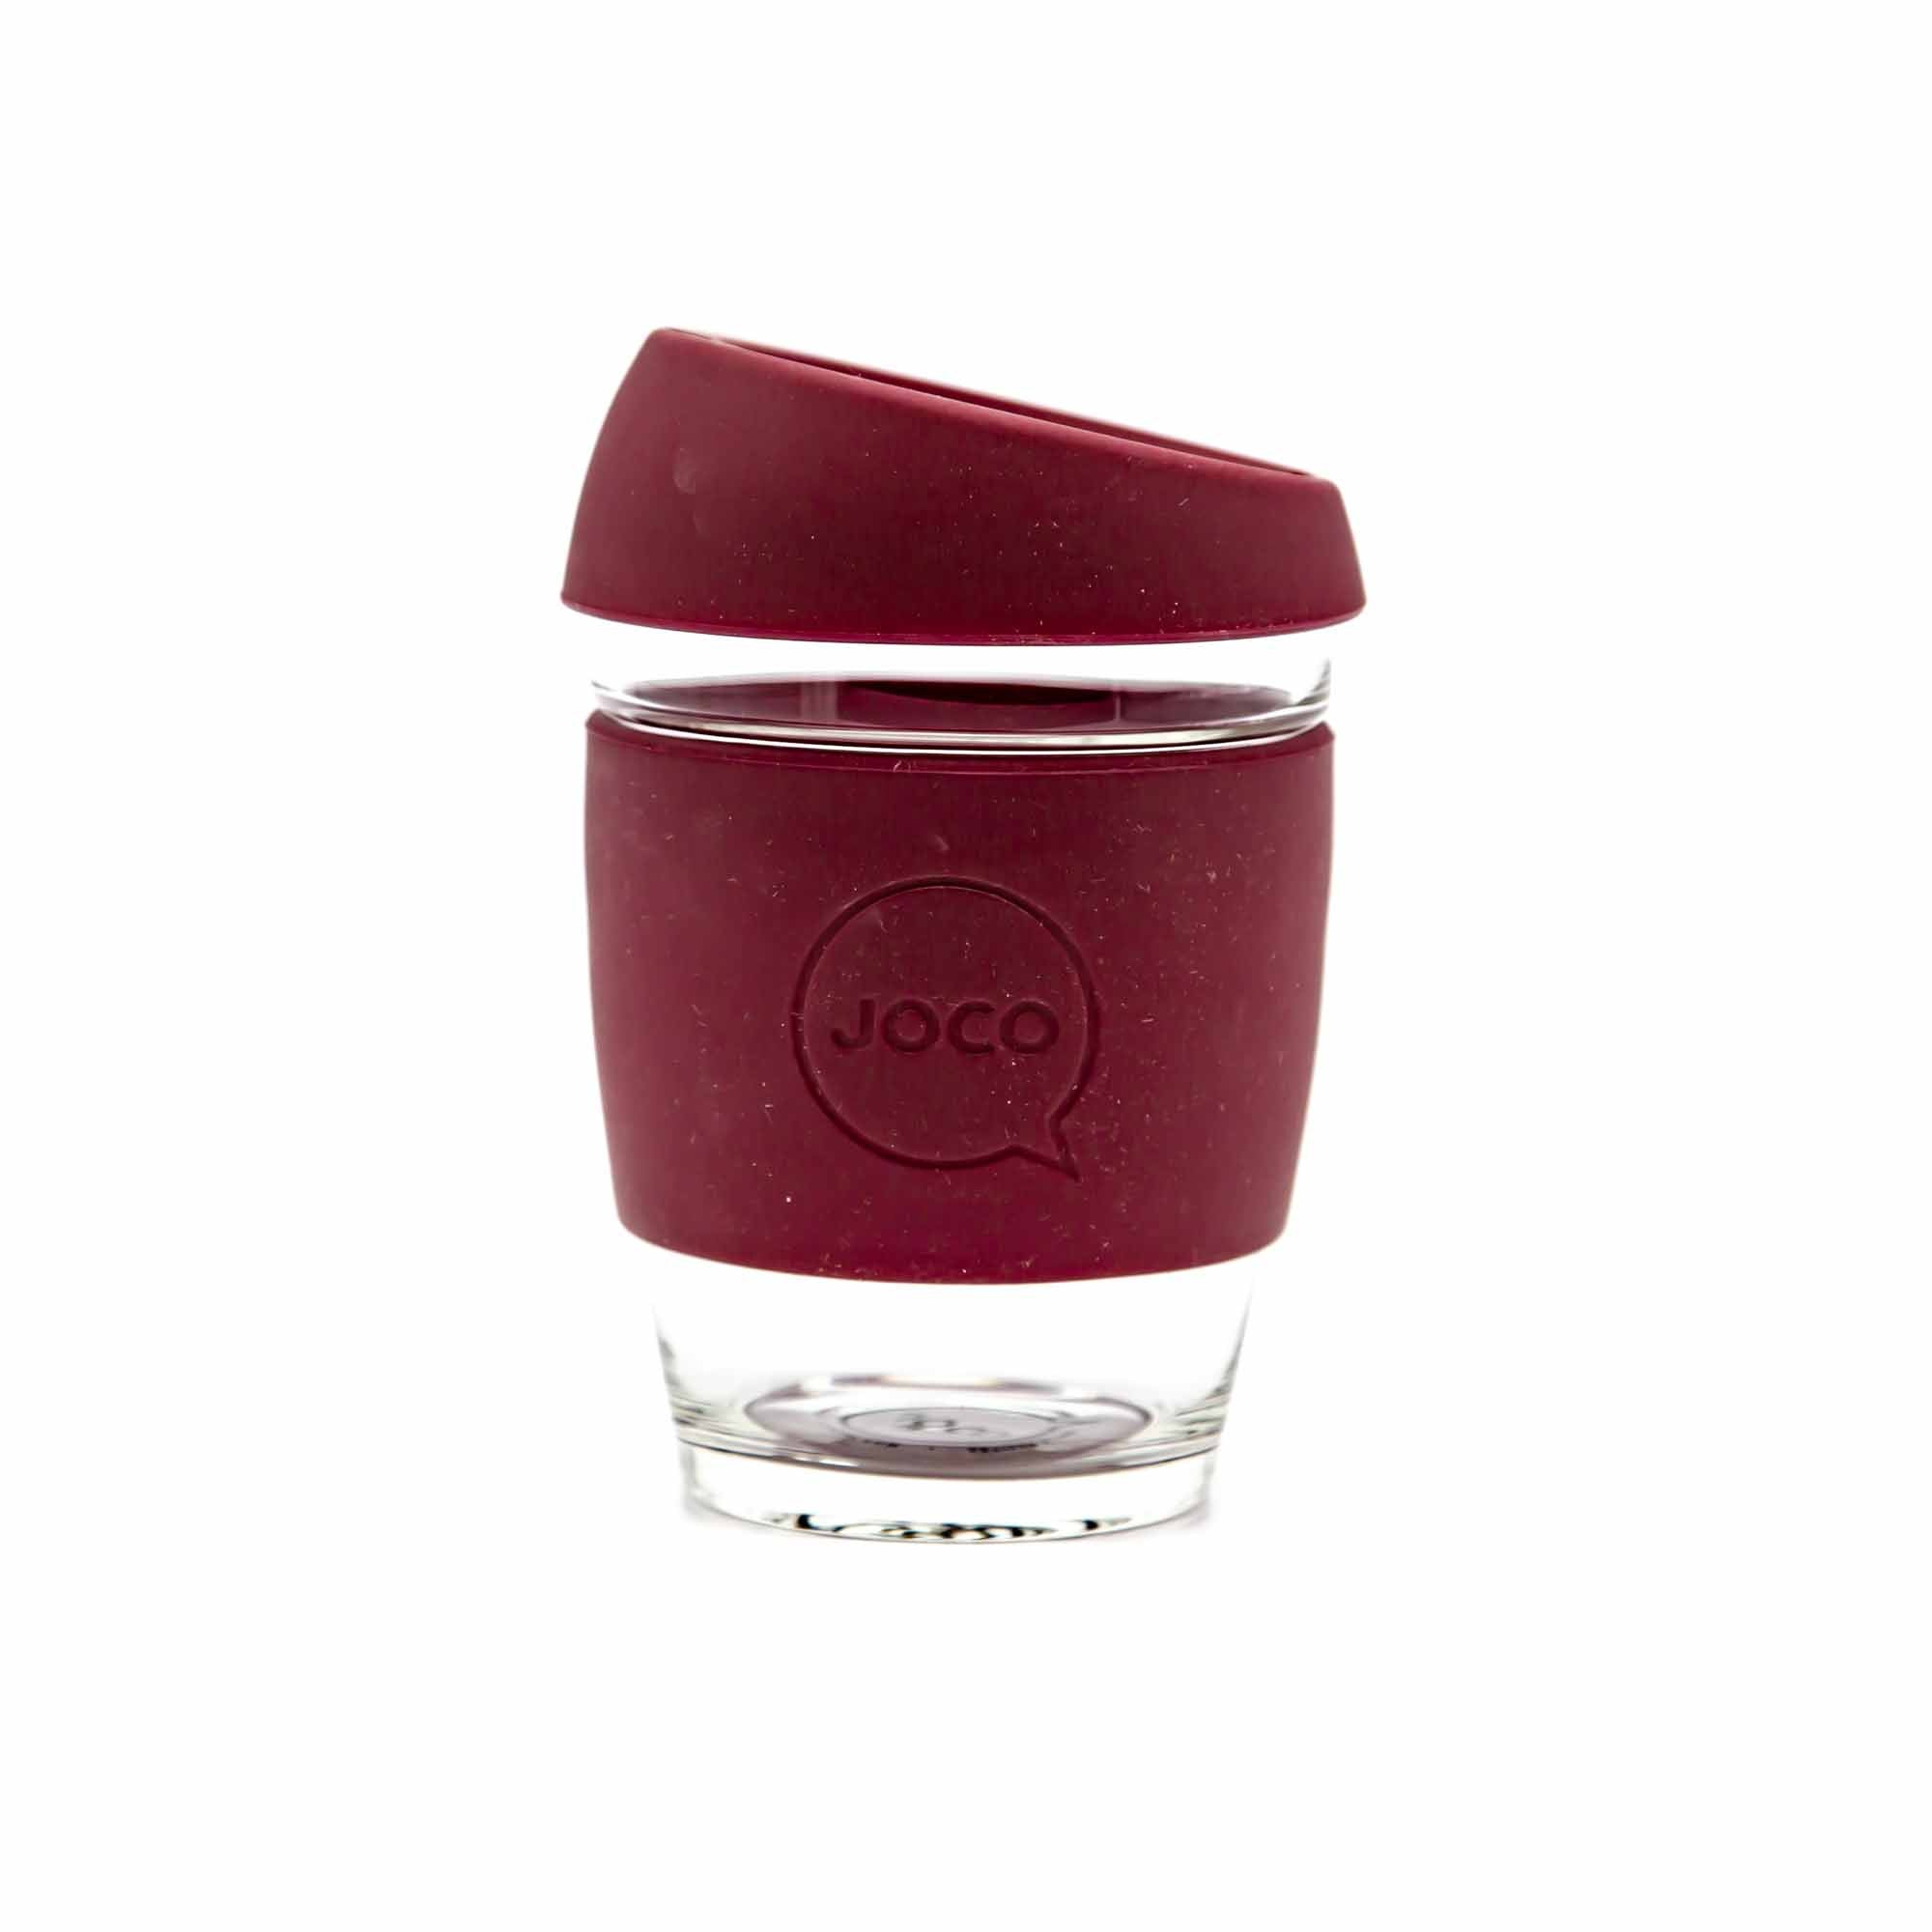 Joco Reusable Cup - 12oz - Ruby Wine - Mortise And Tenon